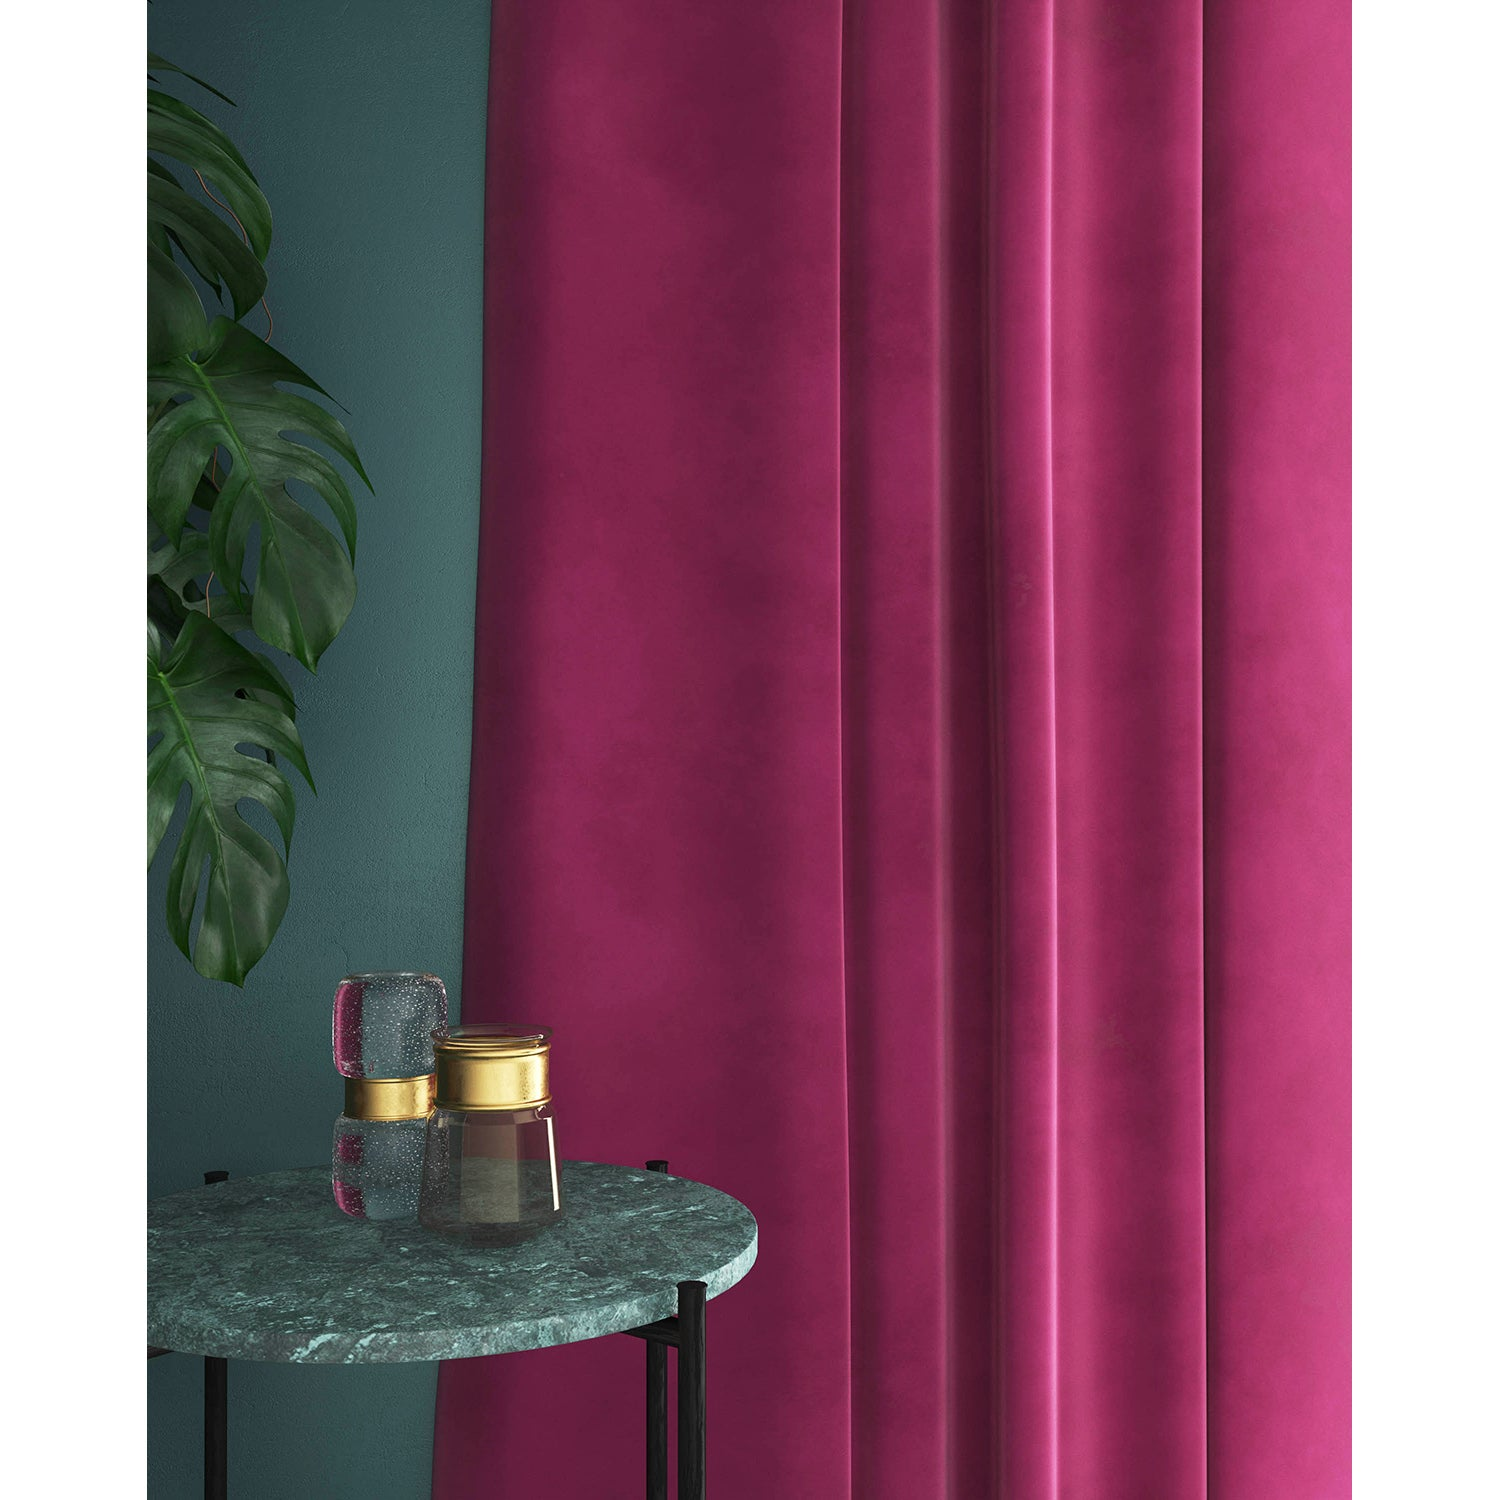 Pink velvet curtains with a stain resistant finish